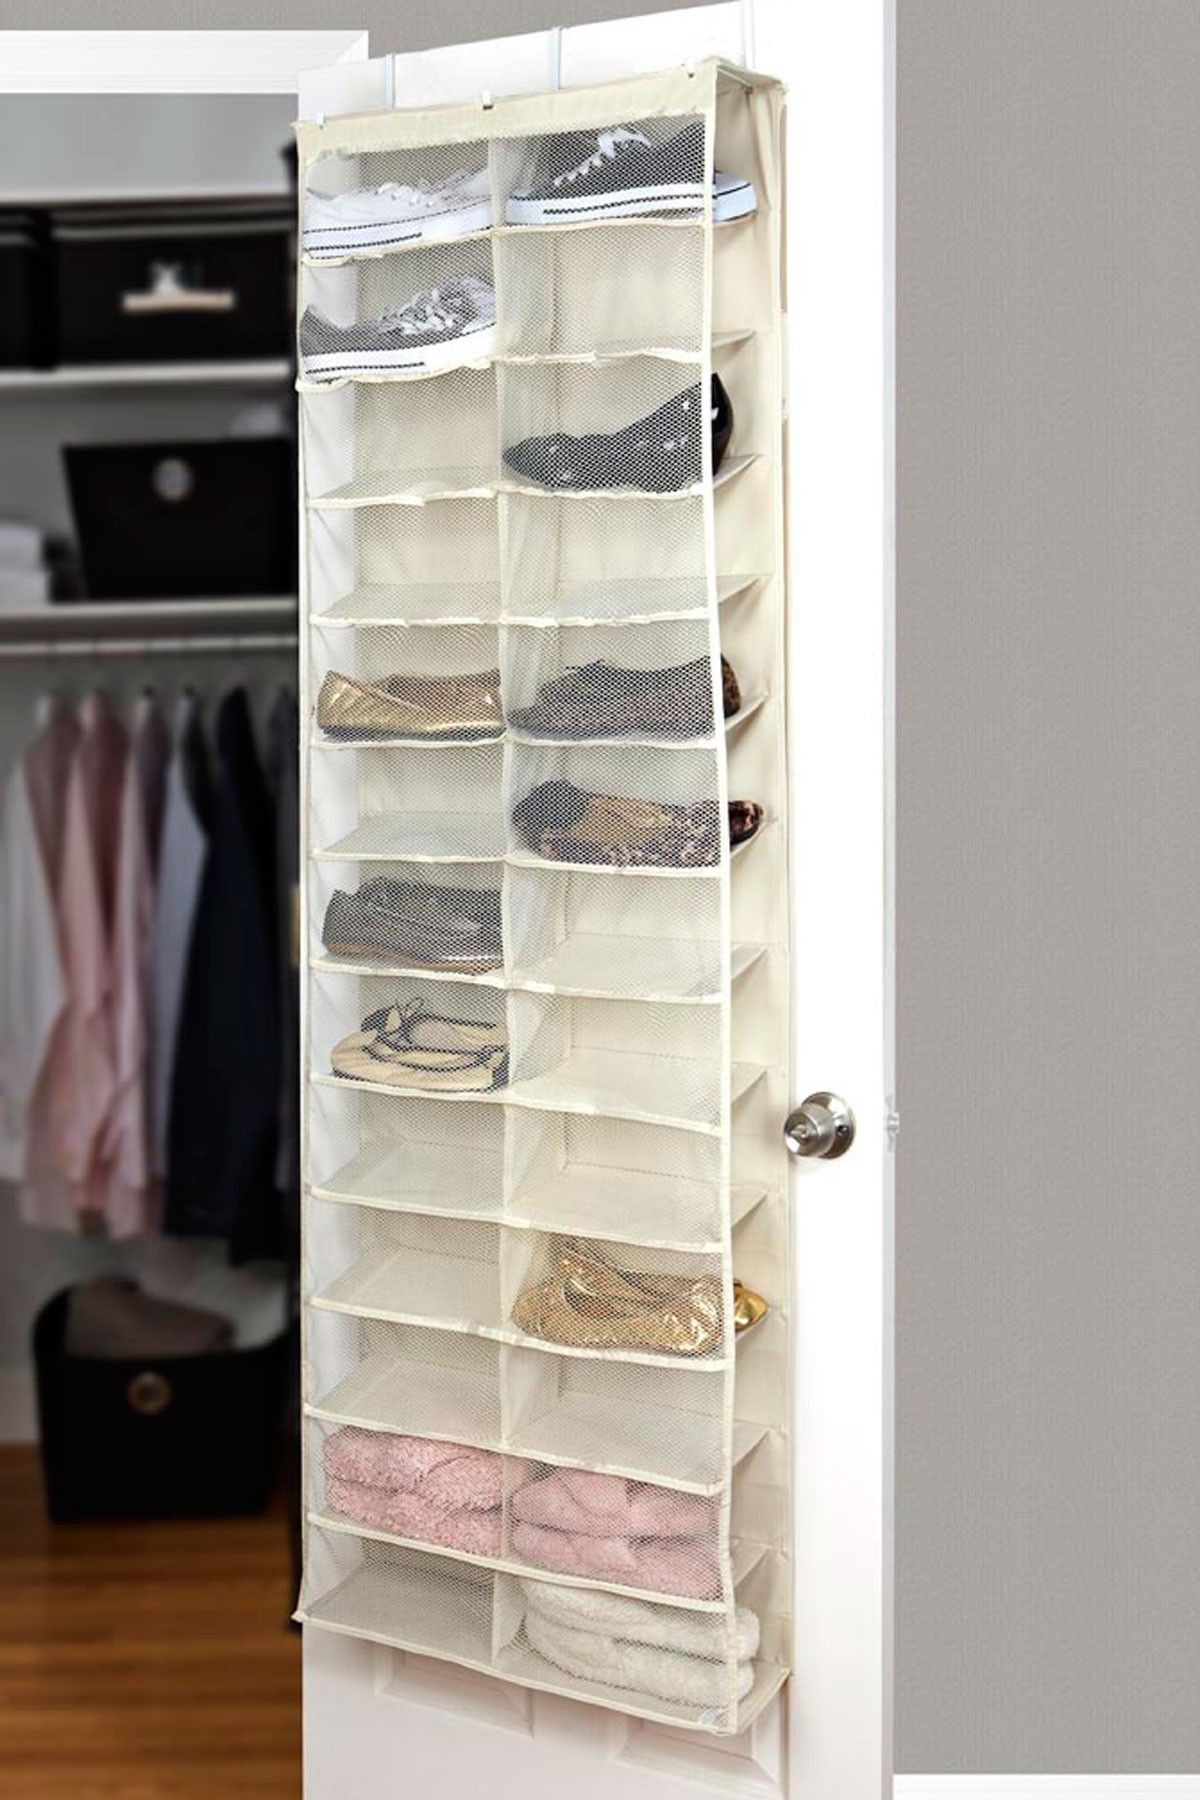 Kennedy Intl 26 Pocket Over The Door Shoe Organizer Ivory On